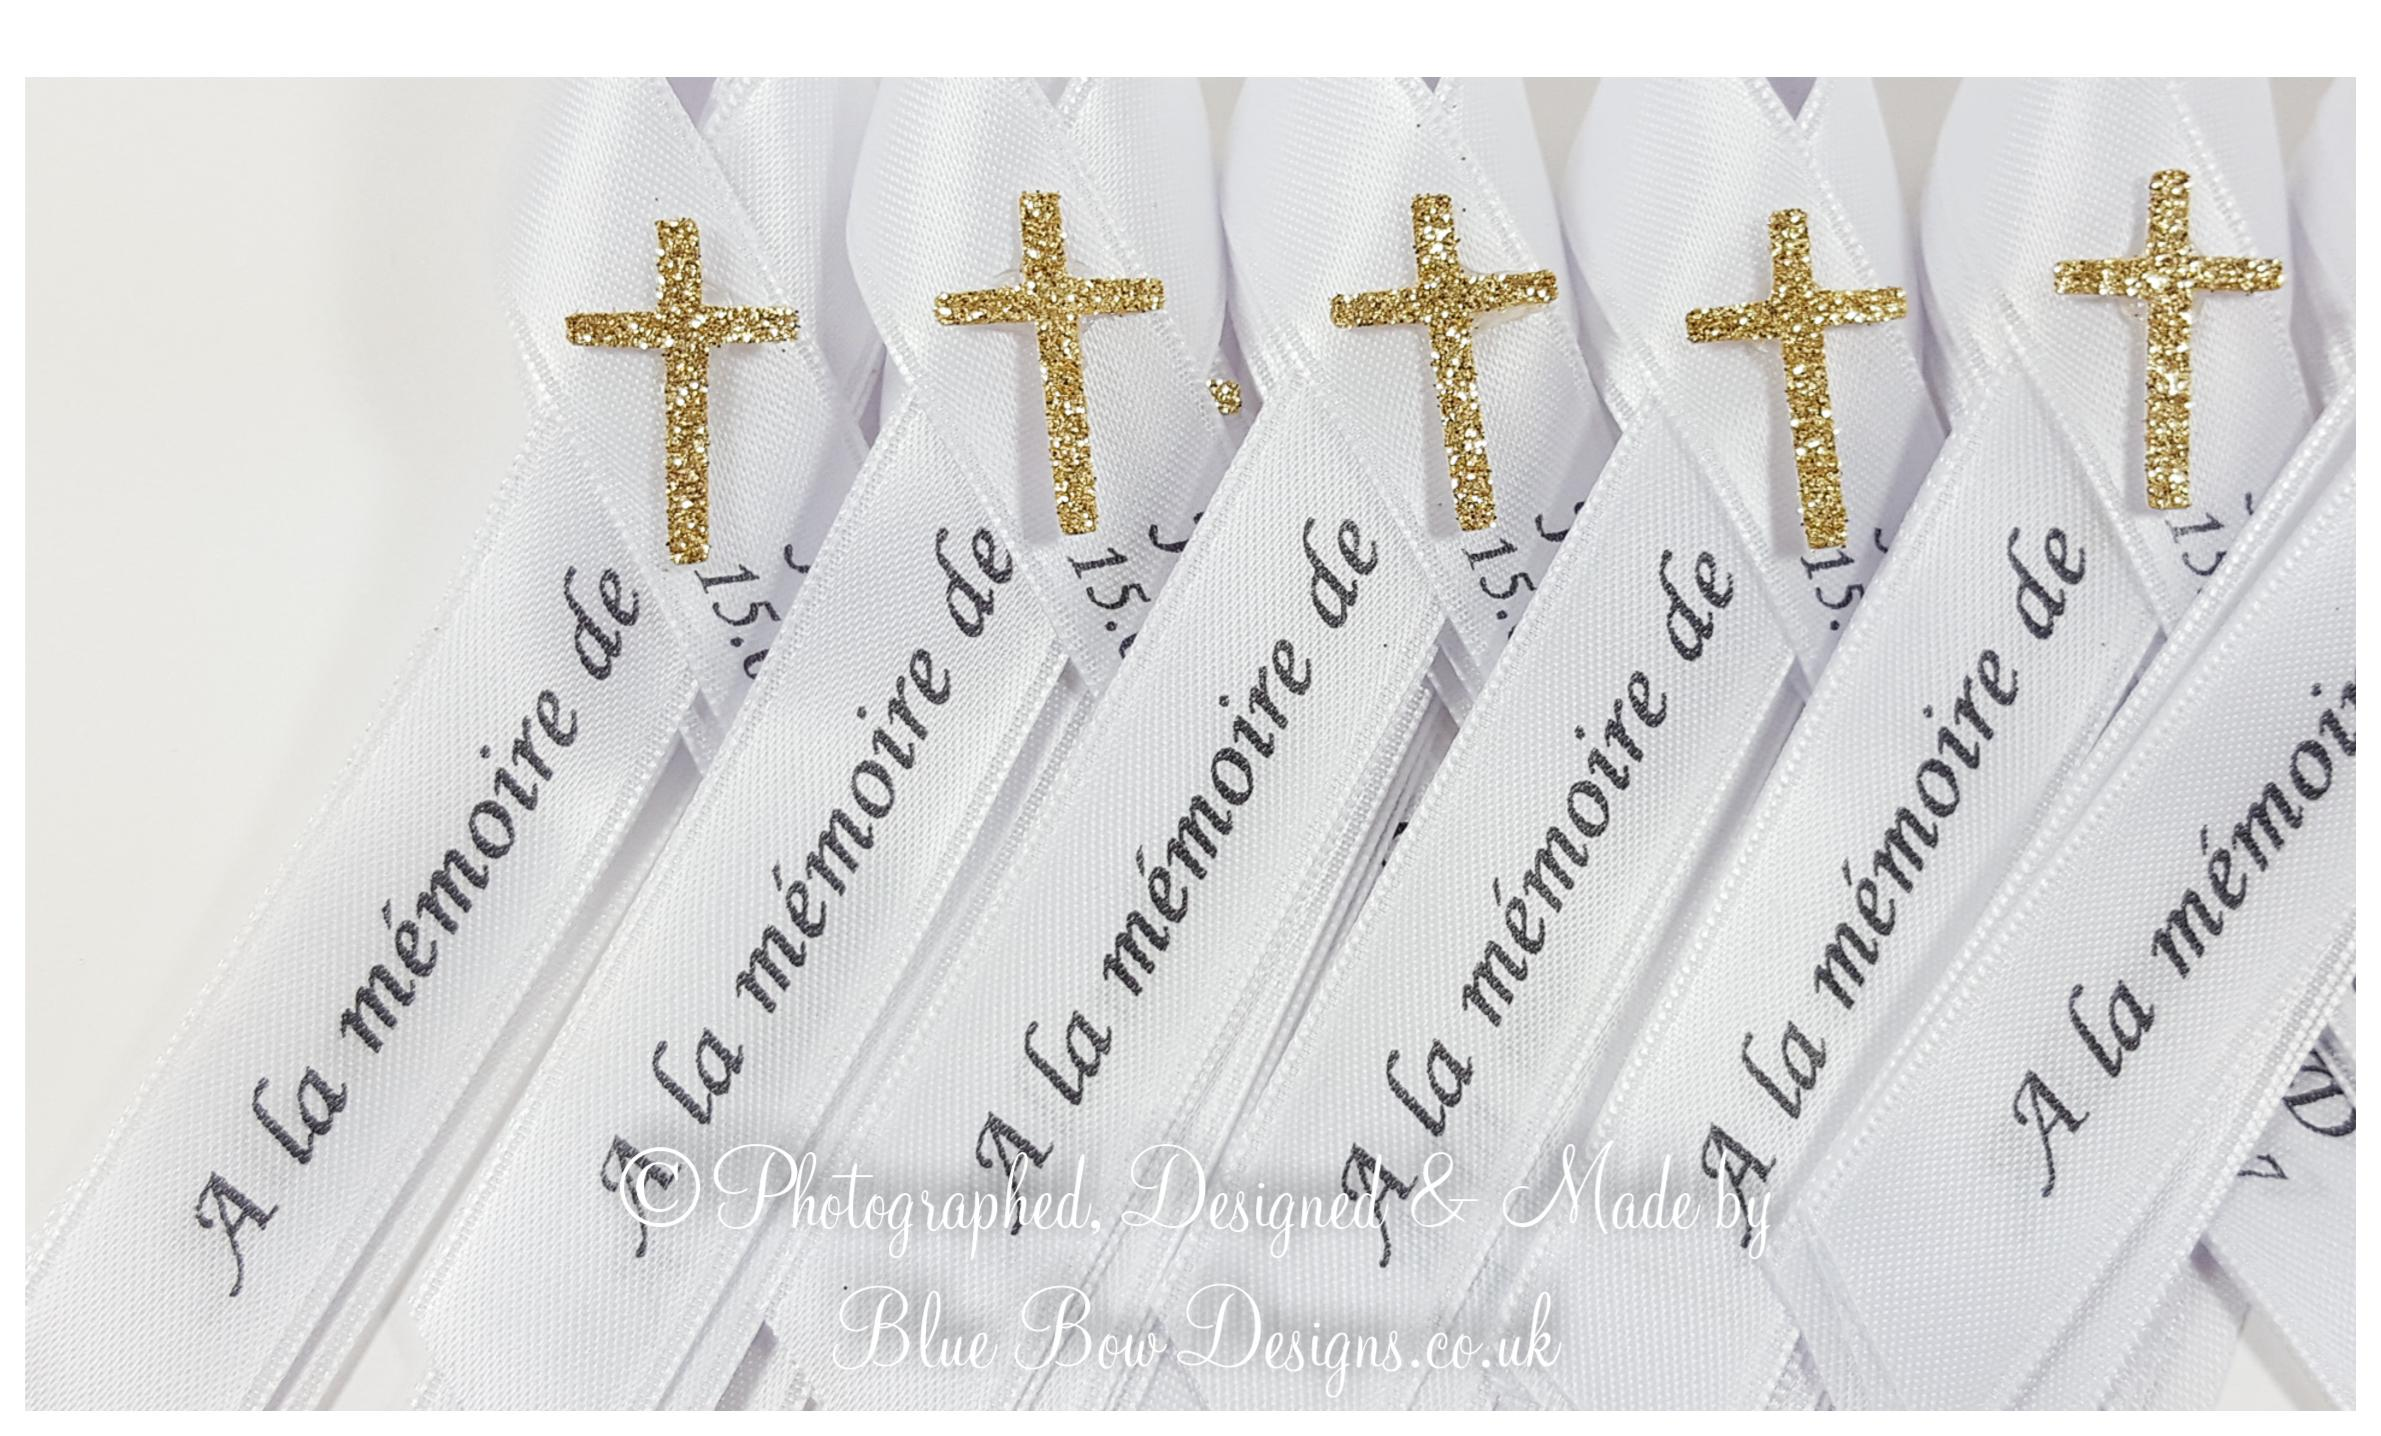 White memorial ribbon with gold cross and text